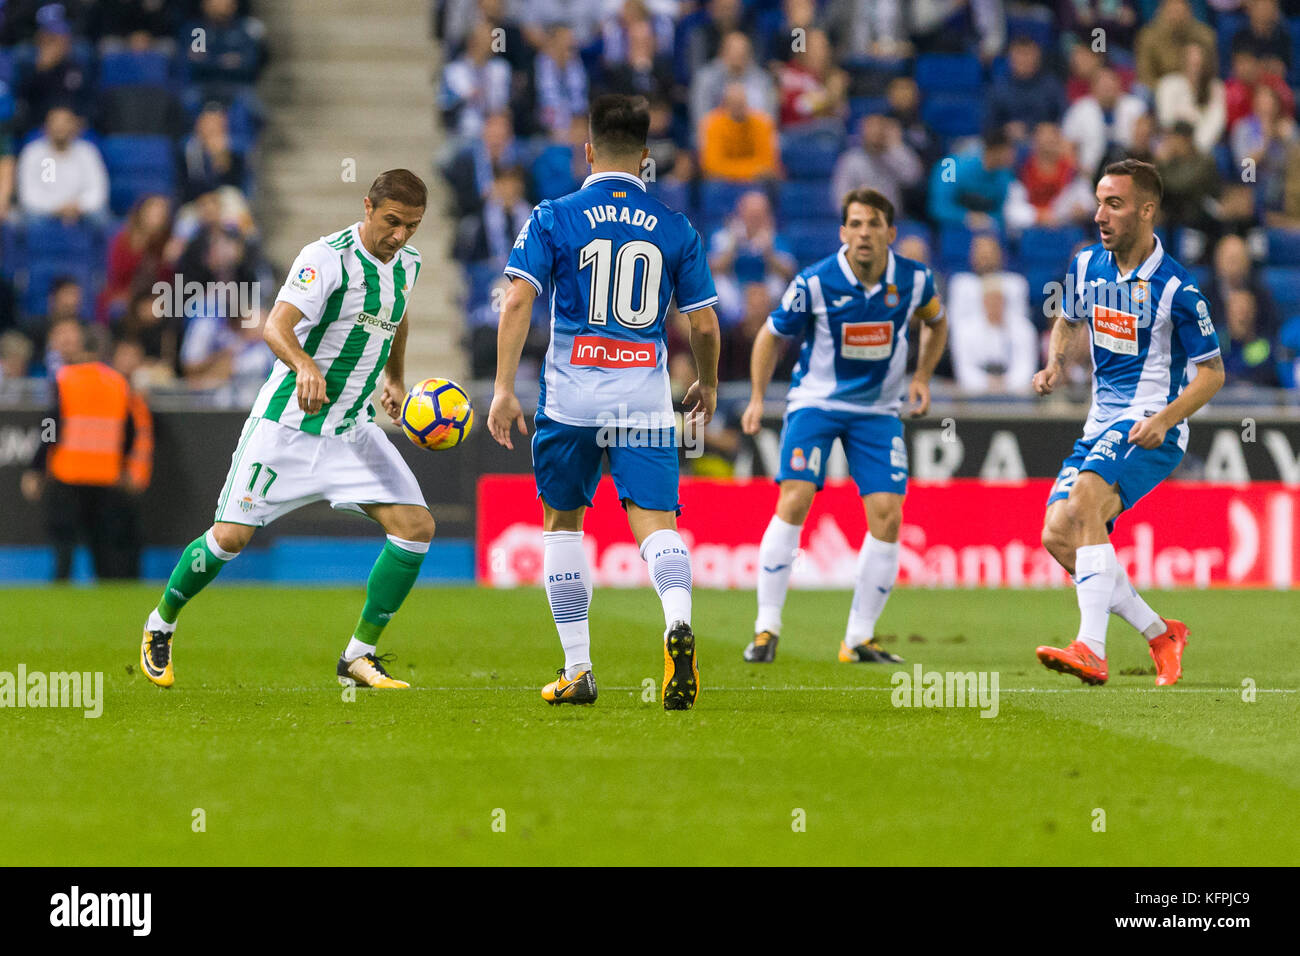 Barcelona, Spain. 30th Oct, 2017. Real Betis Balompie midfielder Joaquin (17) during the match between RCD Espanyol - Stock Image